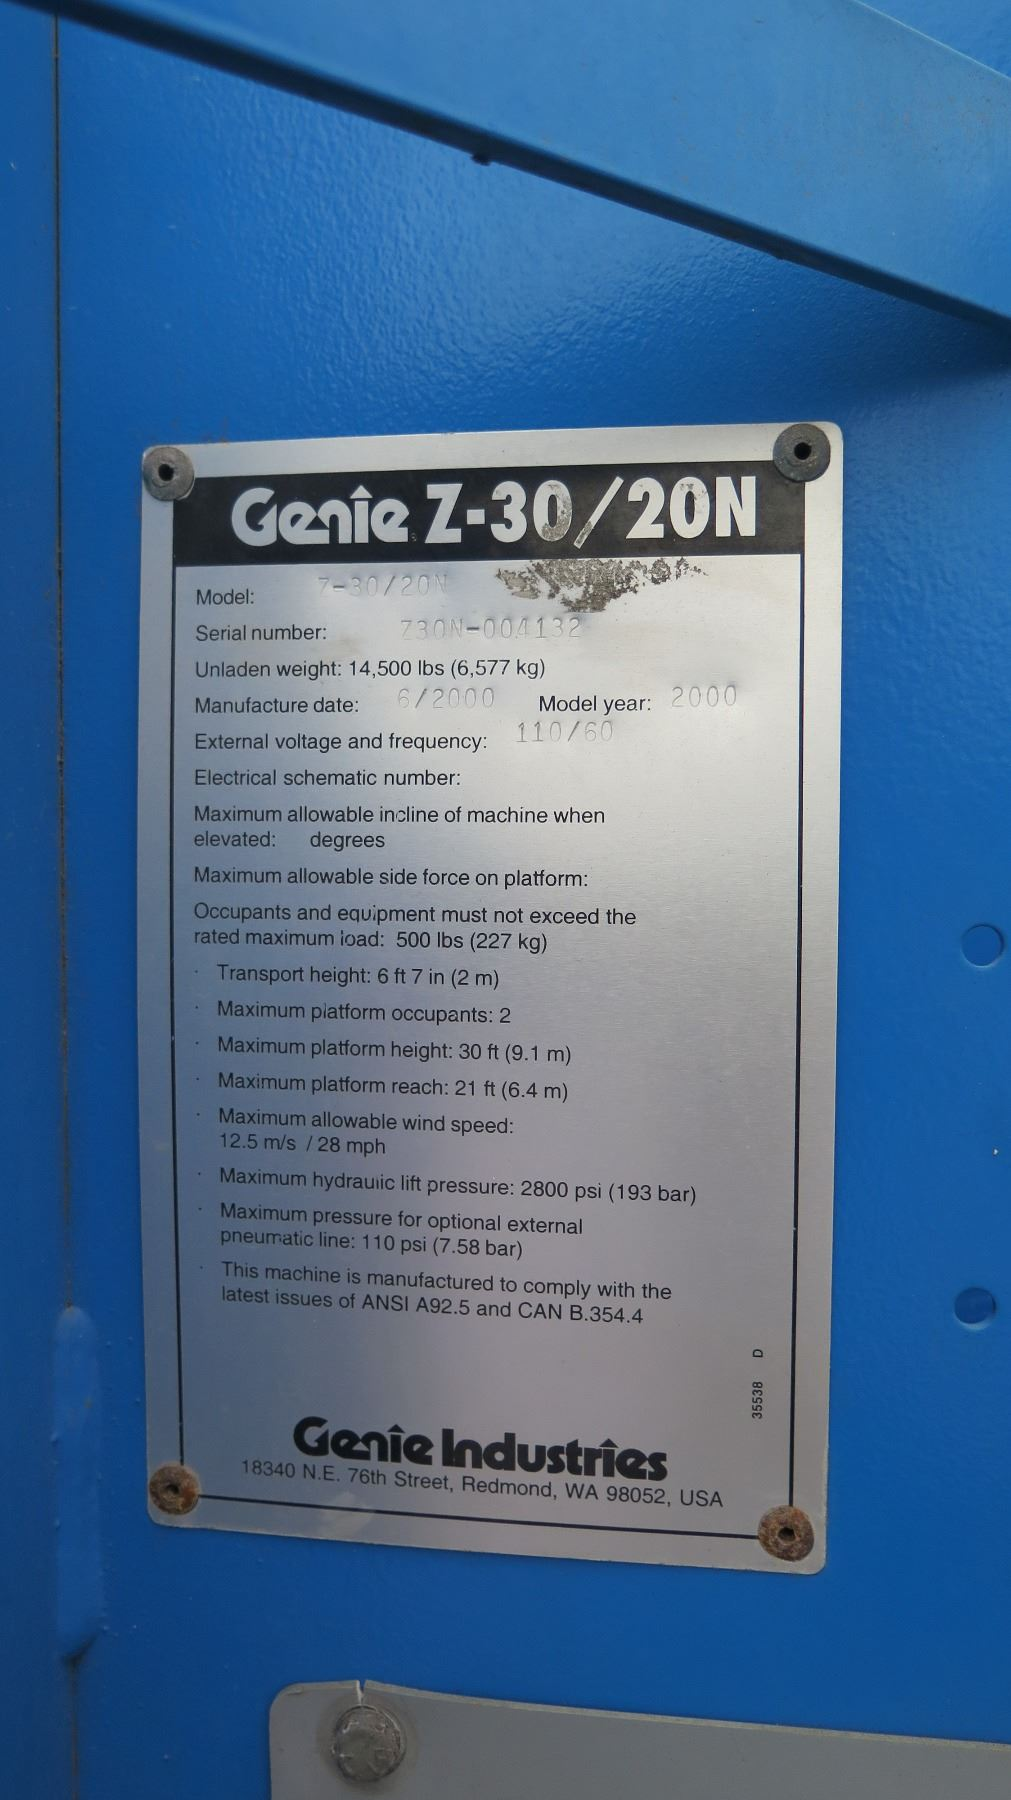 Z30 20 Geni Wiring Diagram Trusted Schematics 730n 2000 Genie Z 30 20n Articulating Boom Lift Charge Doesnt Last Long Ford Schematic